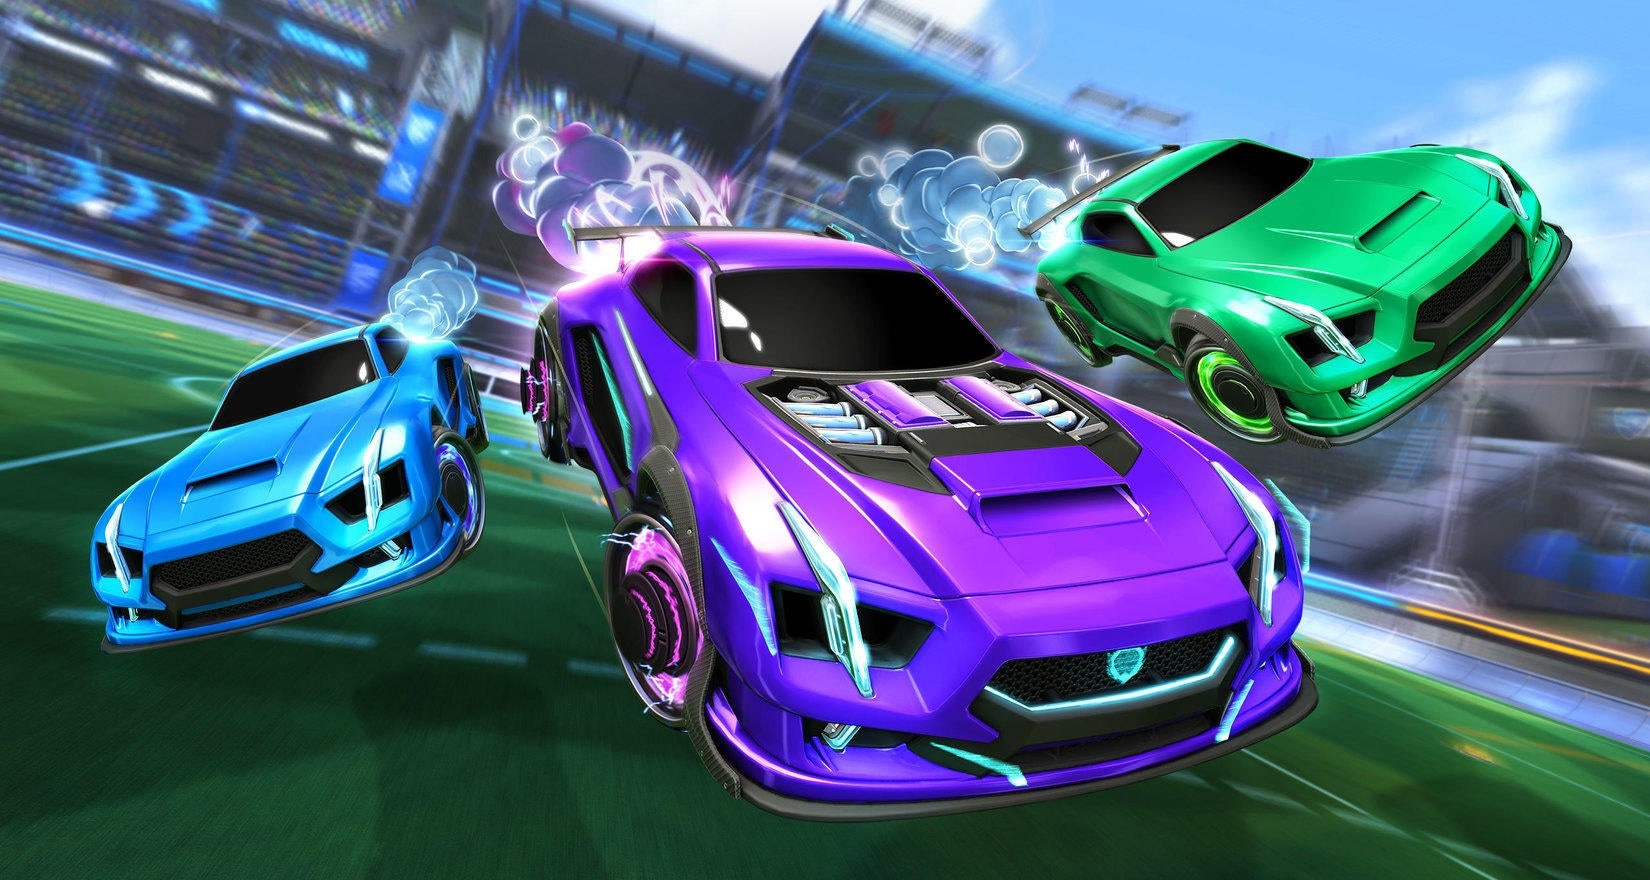 Play Rocket League Official Site Pdv Paket Auto Detailing Total Size S Image